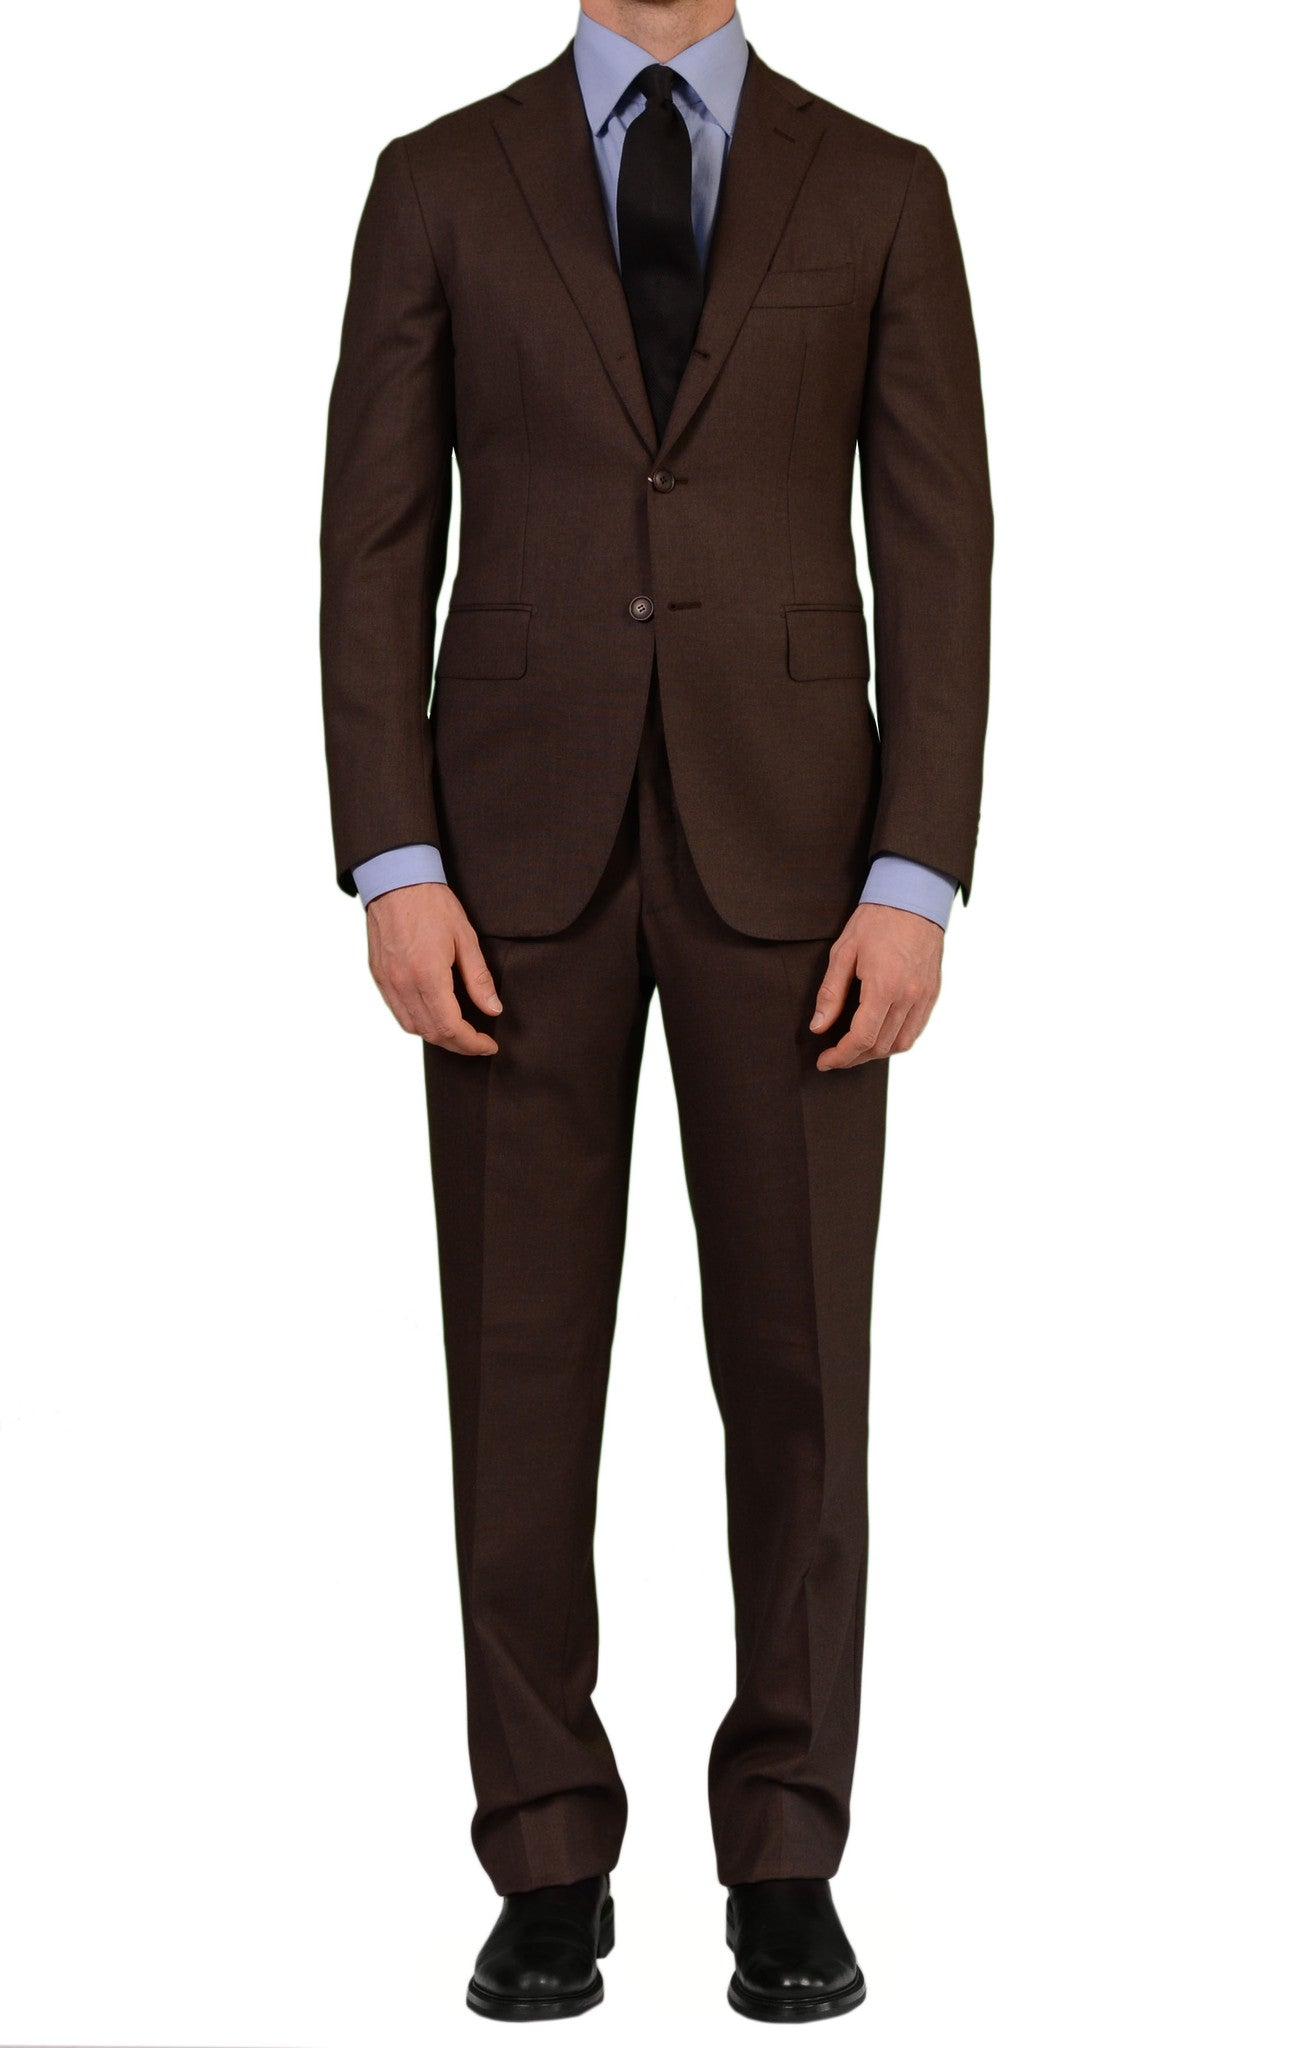 7e83063e8cde SARTORIA PARTENOPEA Hand Made Napoli Solid Brown Wool Suit NEW ...